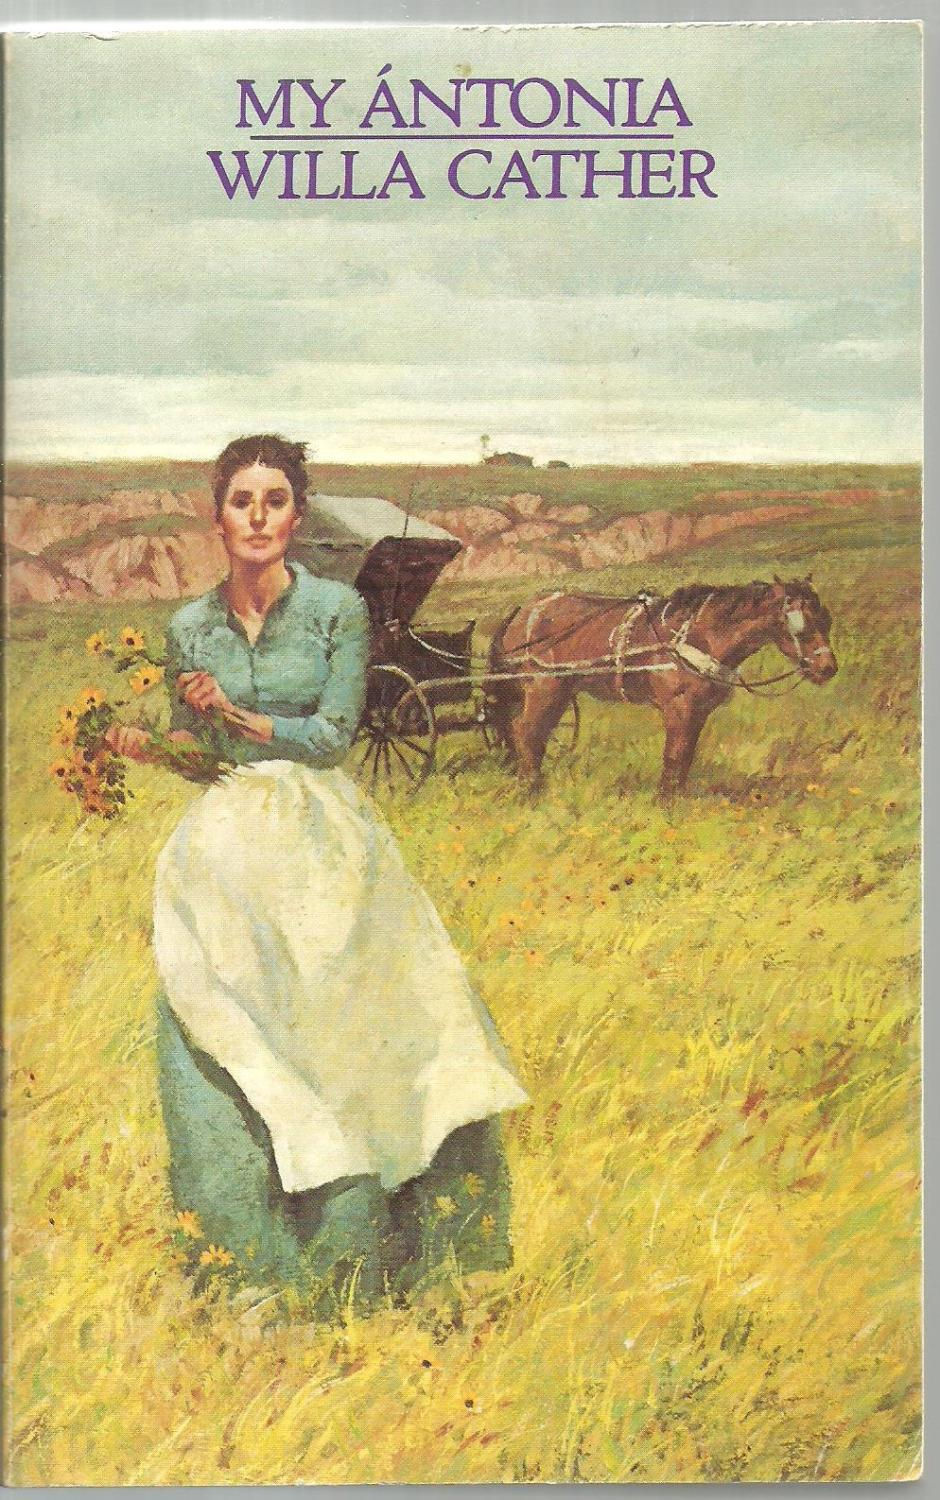 an analysis of willa cathers novel my antonia Buy a cheap copy of my Ántonia book by willa cather the song of the lark, and my antonia great short works of willa cather willa c immigrants published.